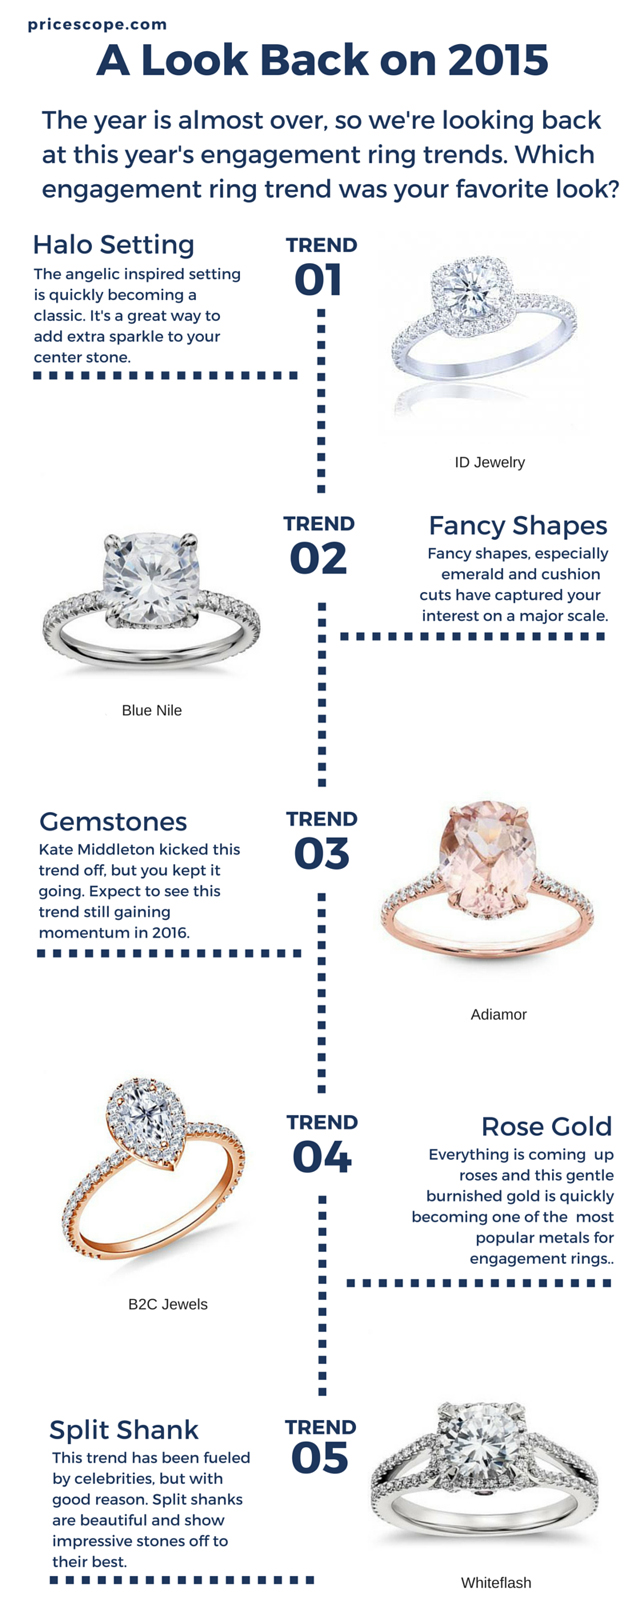 A Look Back On 2015 - Engagement Ring Trends